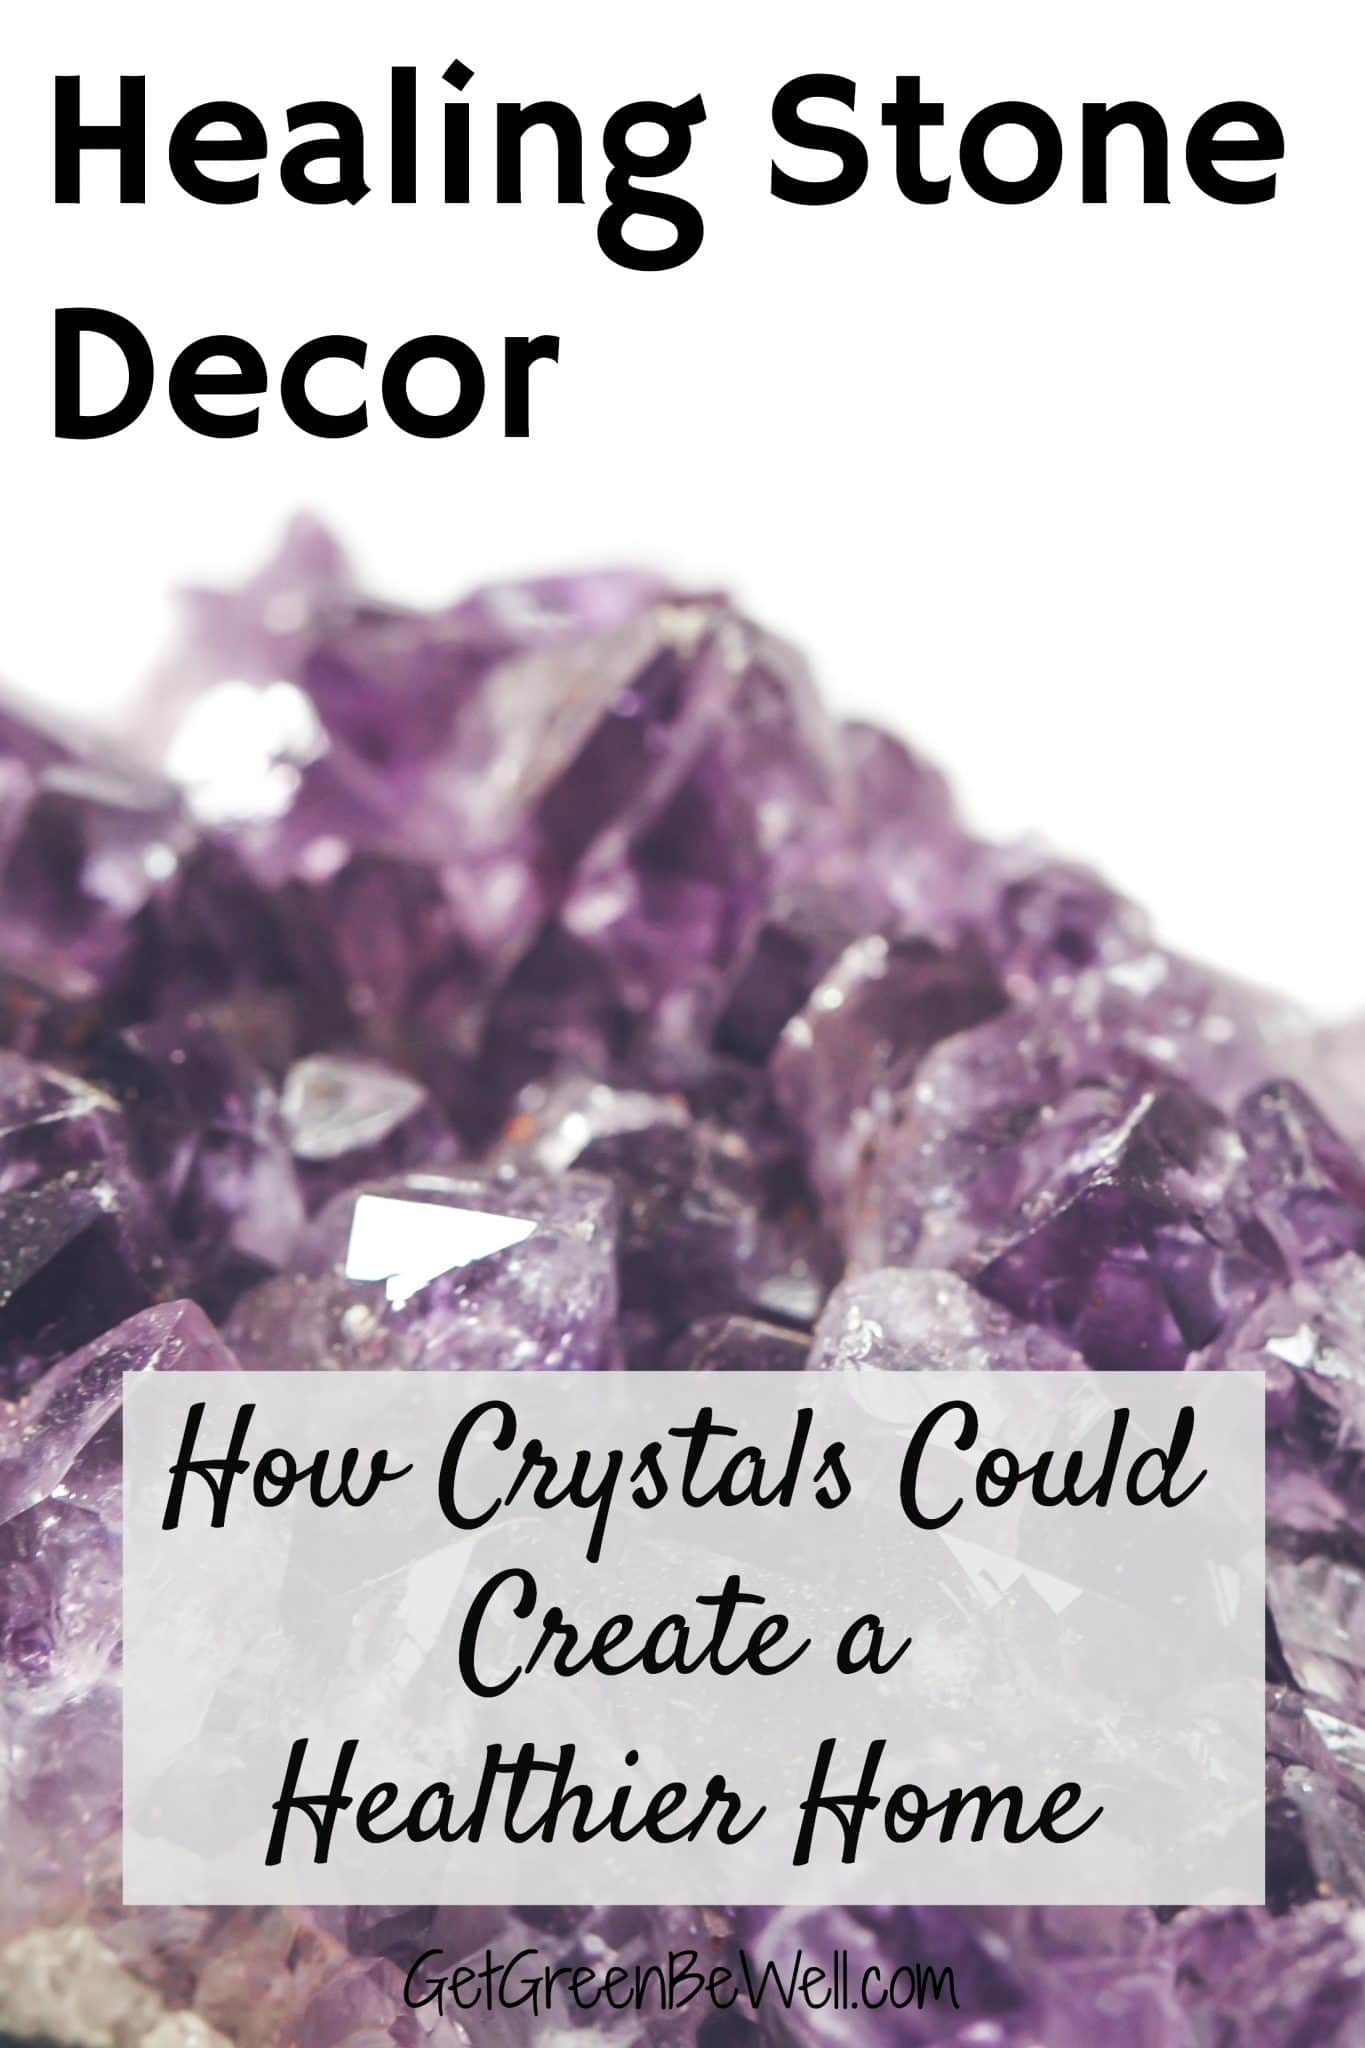 Crystals for the Home: Healing Stone Decor - Get Green Be Well